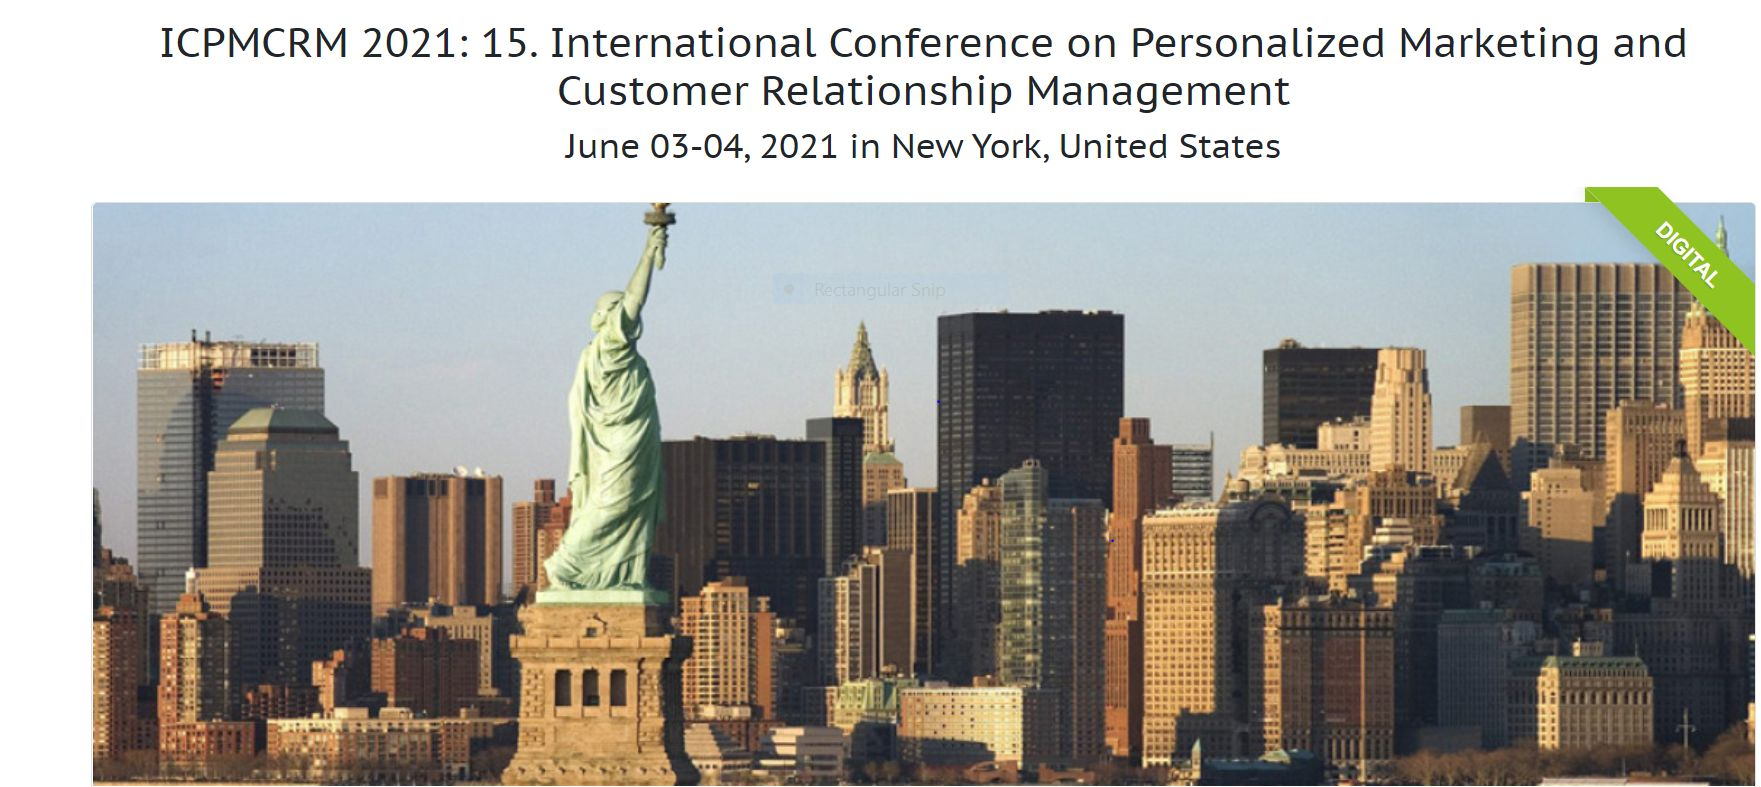 International Conference on Personalized Marketing and Customer Relationship Management